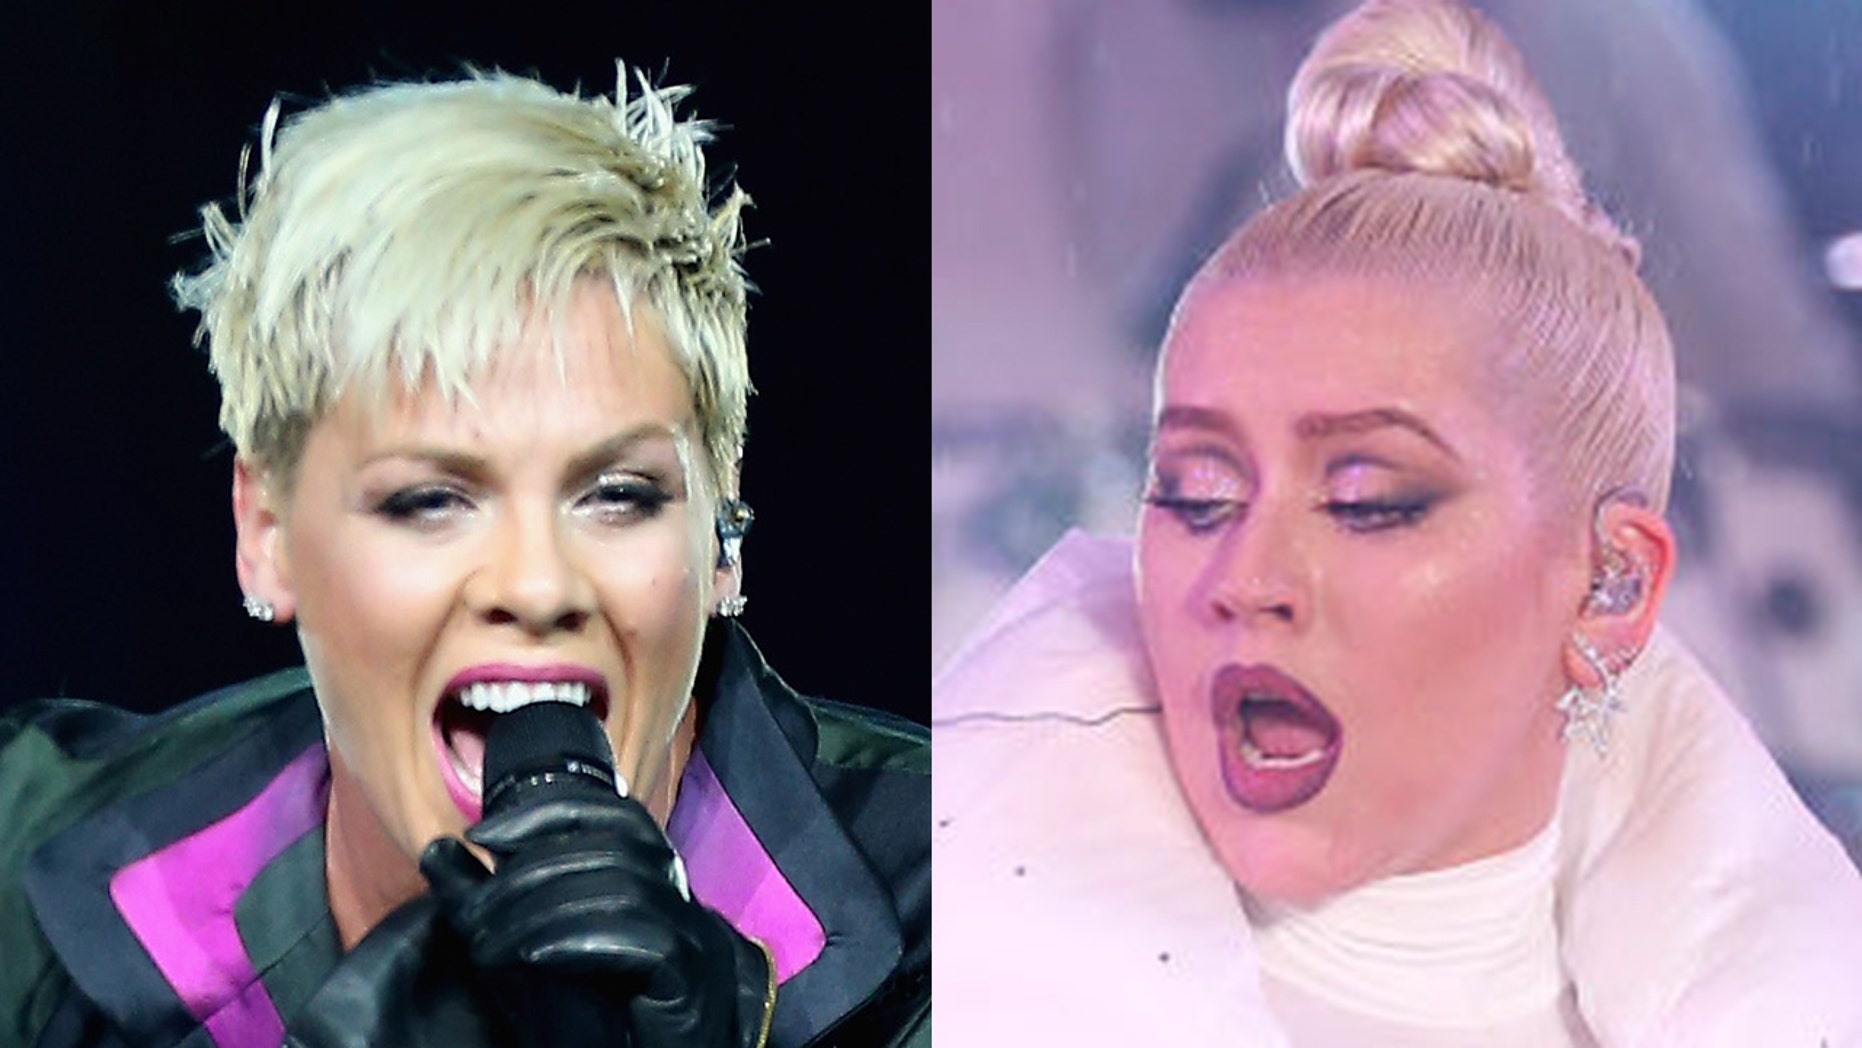 Christina Aguilera [right] denies she ever tried to swing at Pink [left].